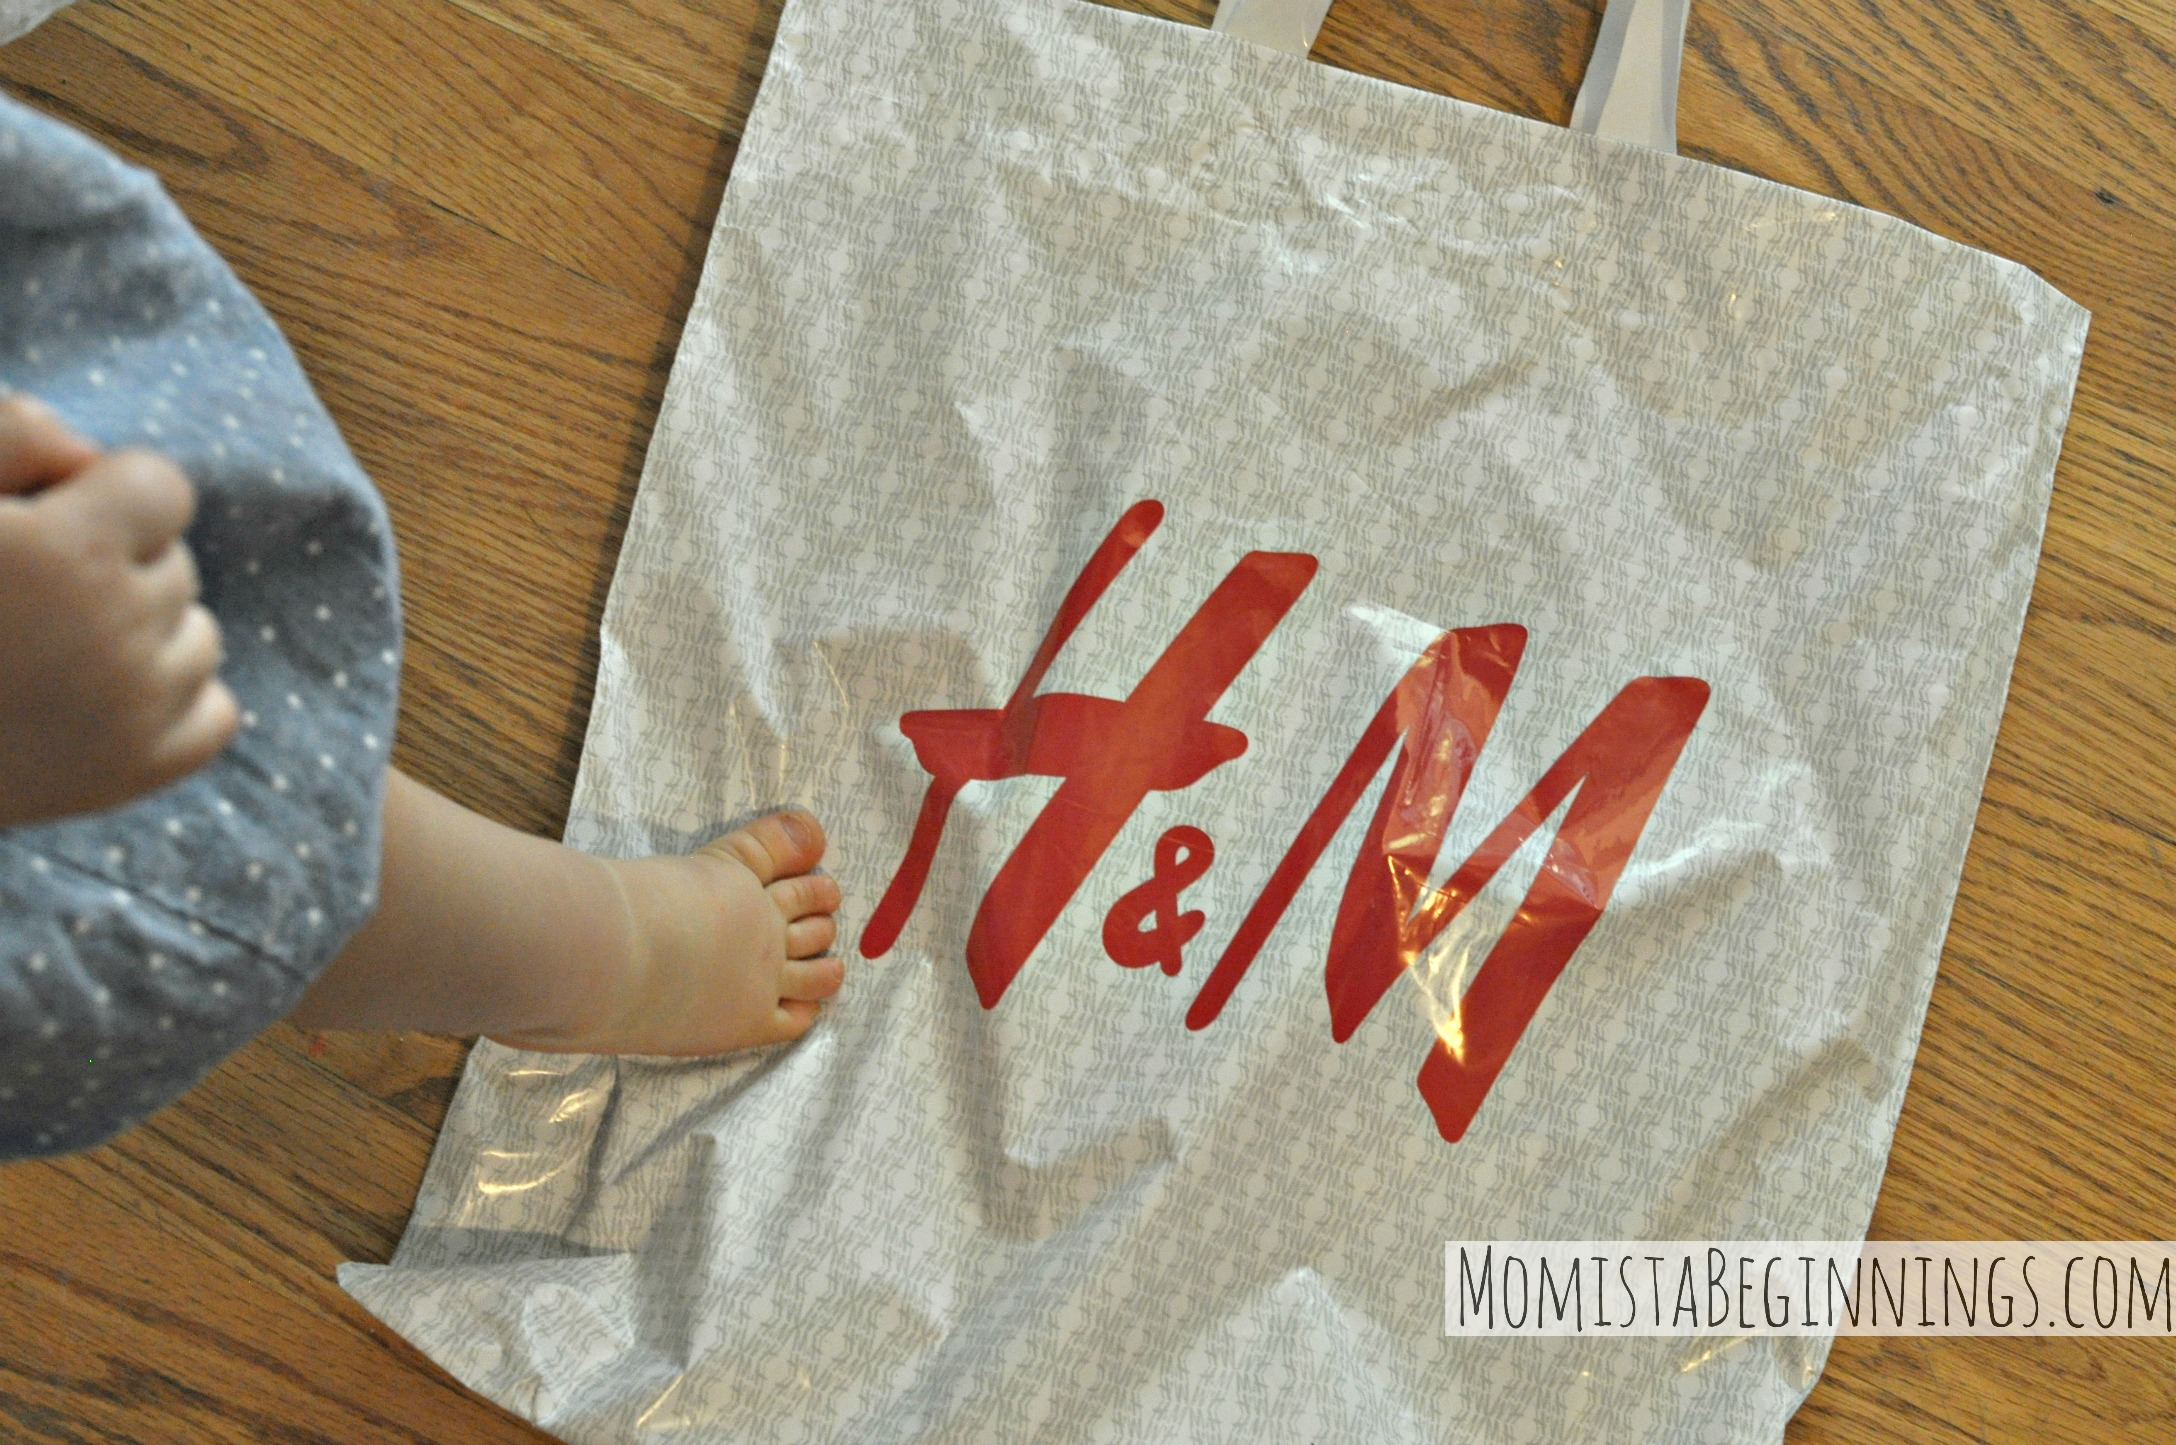 Find great deals on eBay for h&m baby. Shop with confidence.